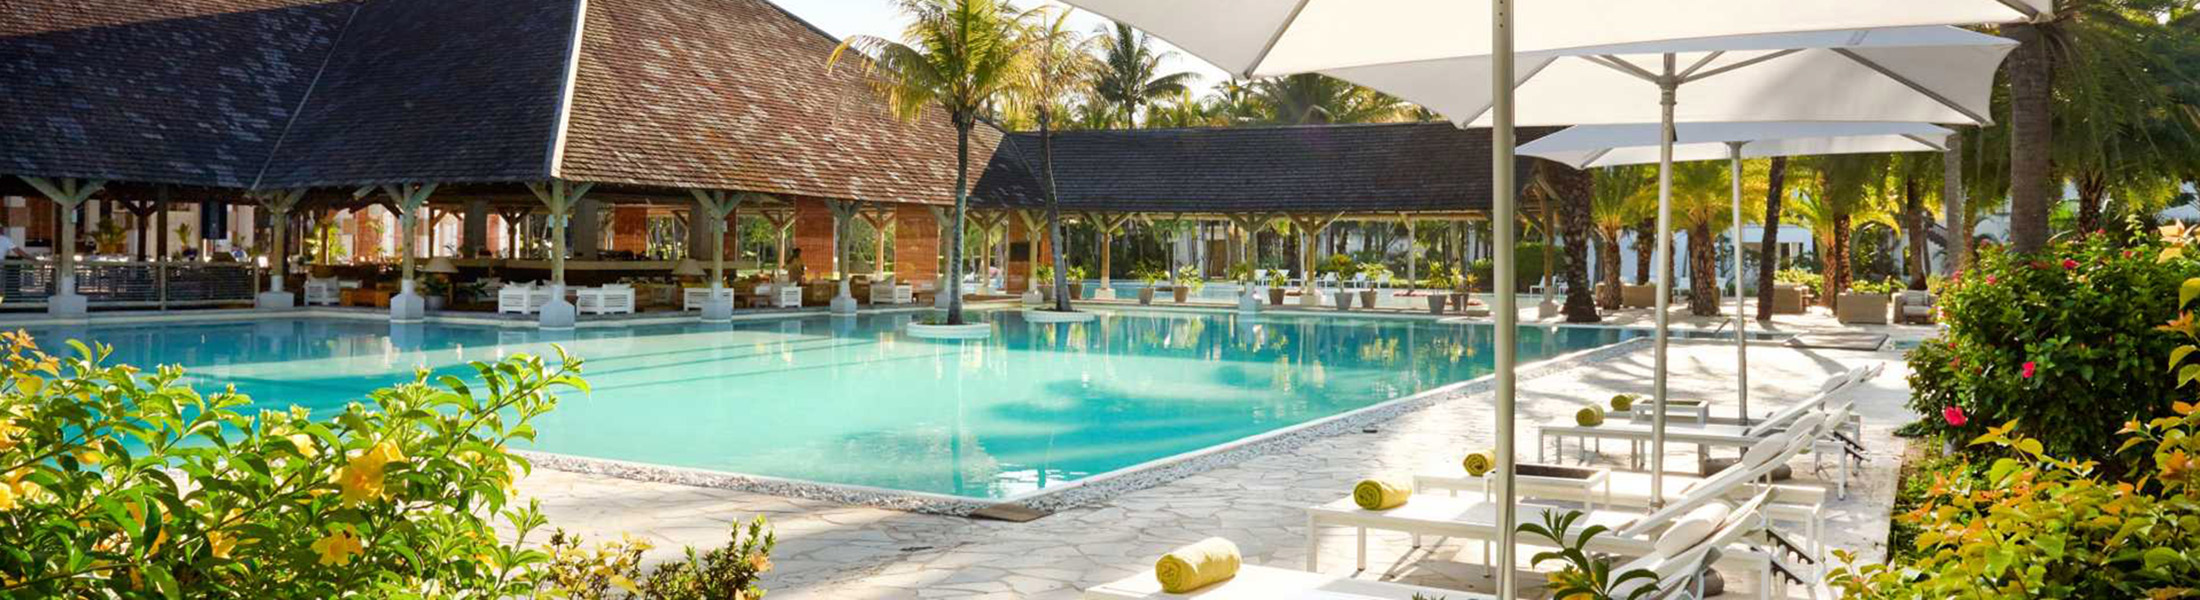 Pool & Loungers at Ravenala Attitude in Mauritius